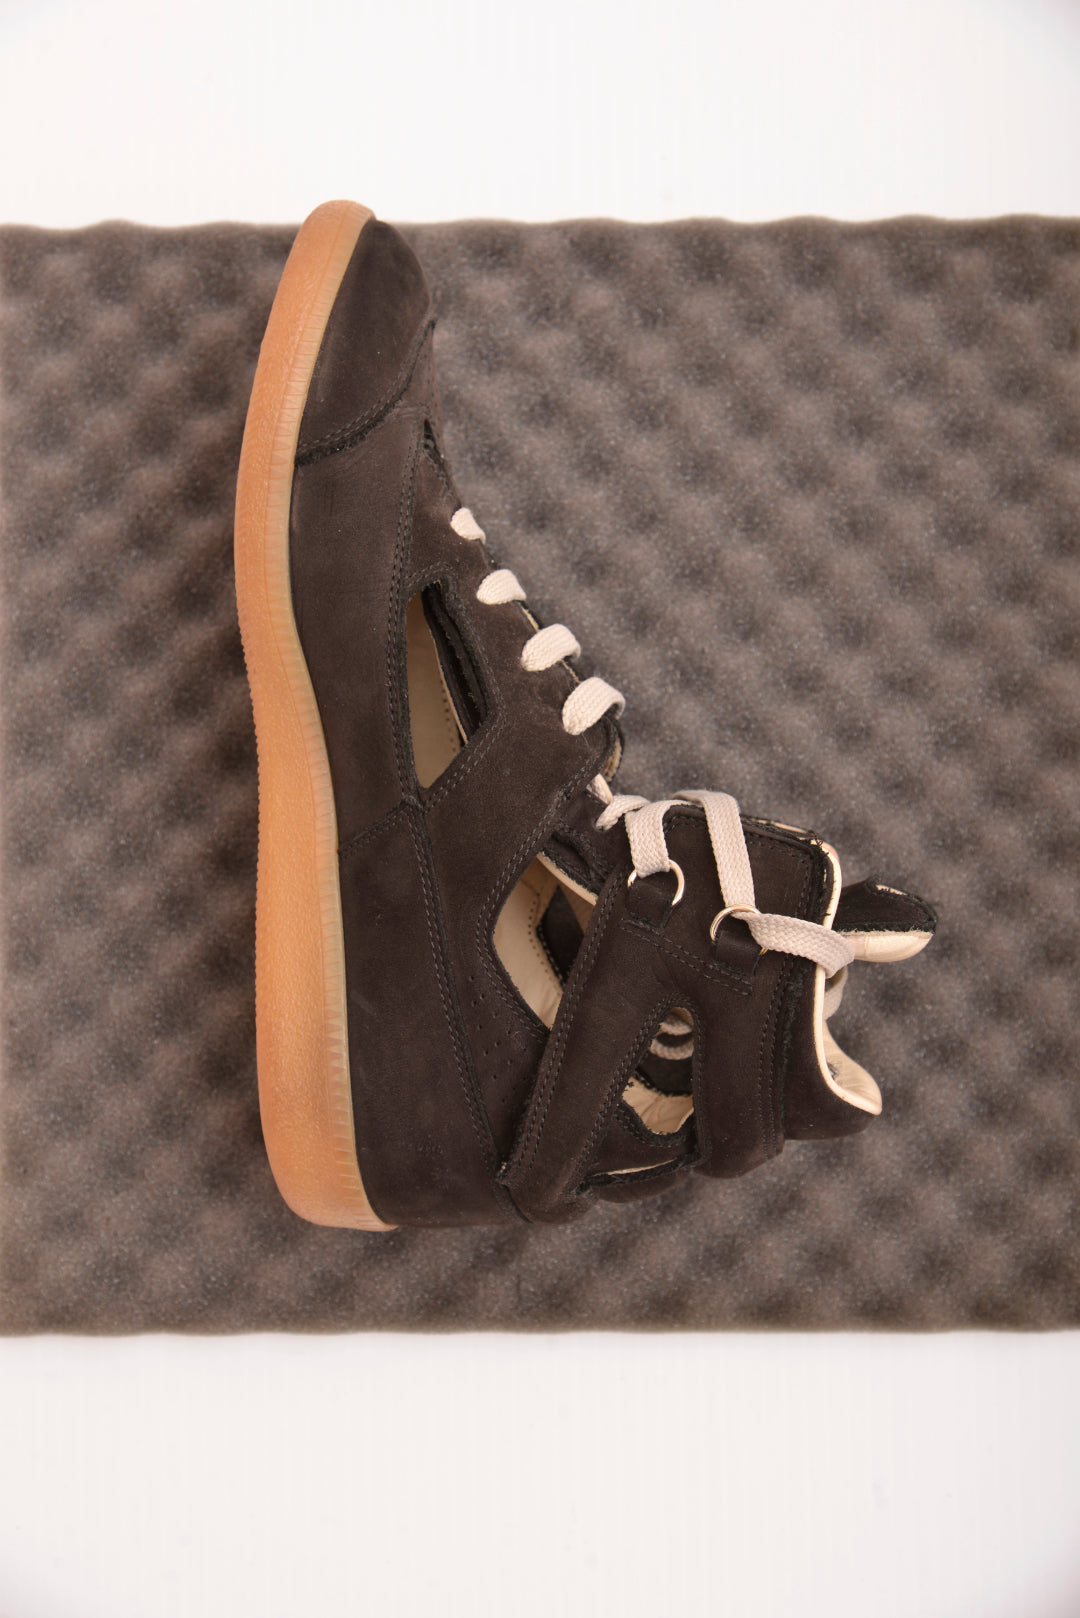 Maison Margiela Cut Out High Top Sneakers (39.5) - Mercado32